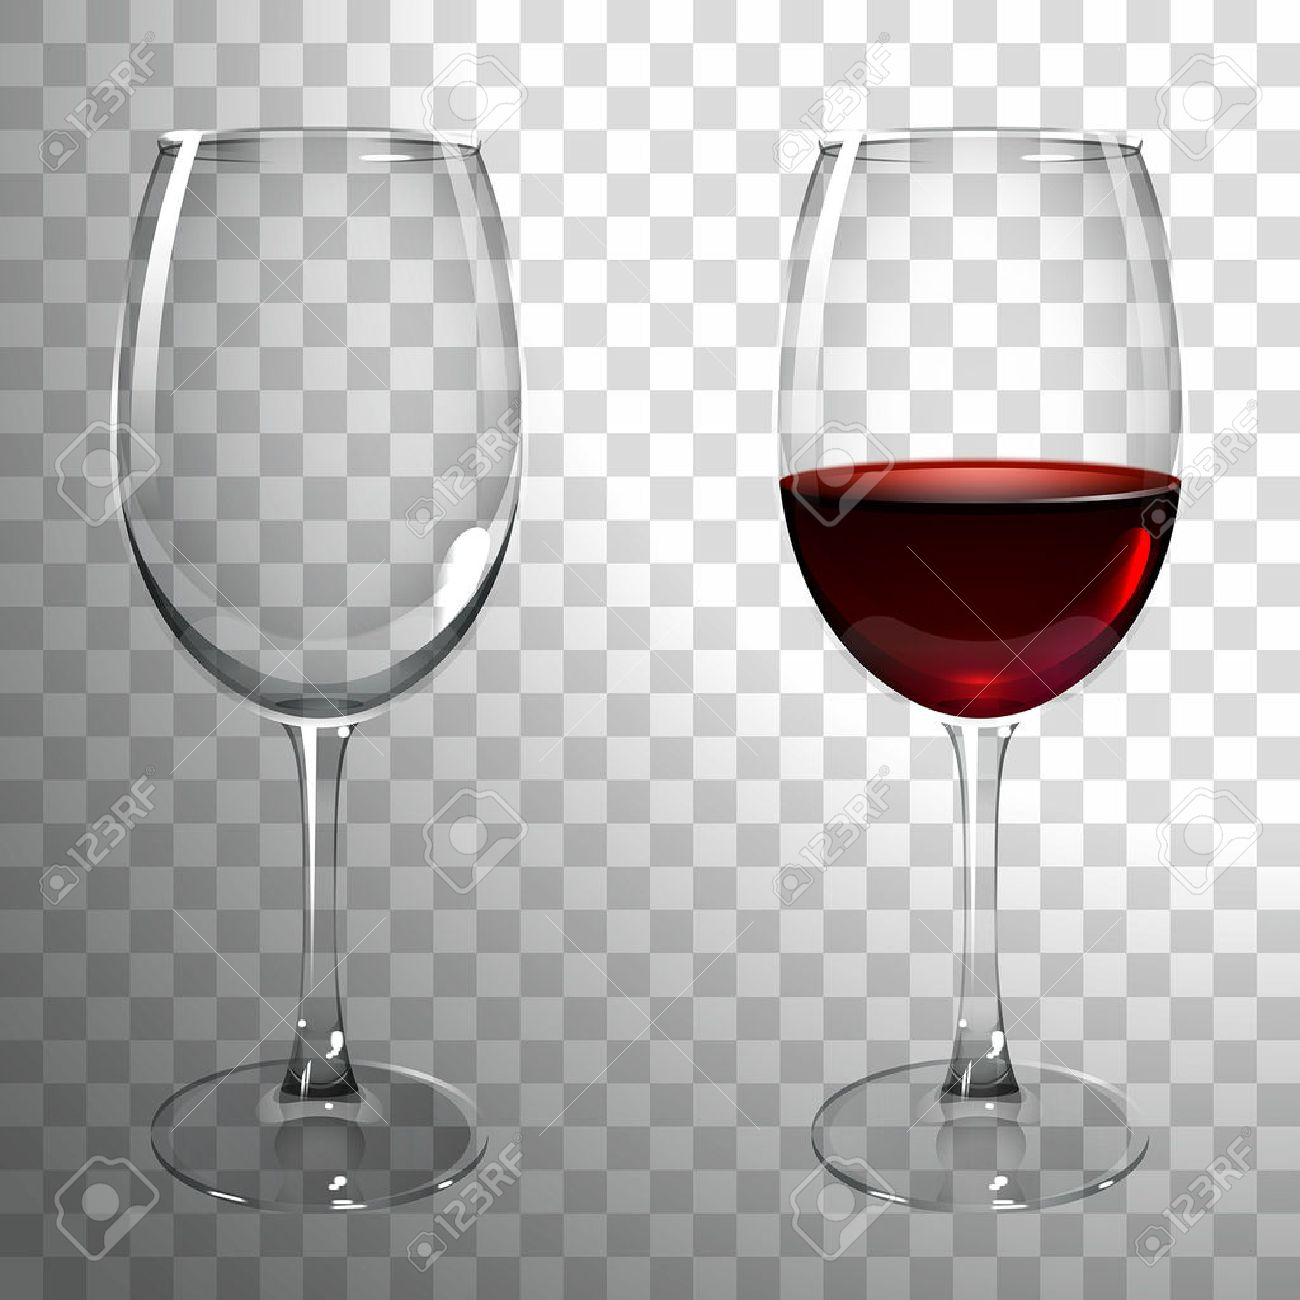 glass of red wine on a transparent background - 60175029